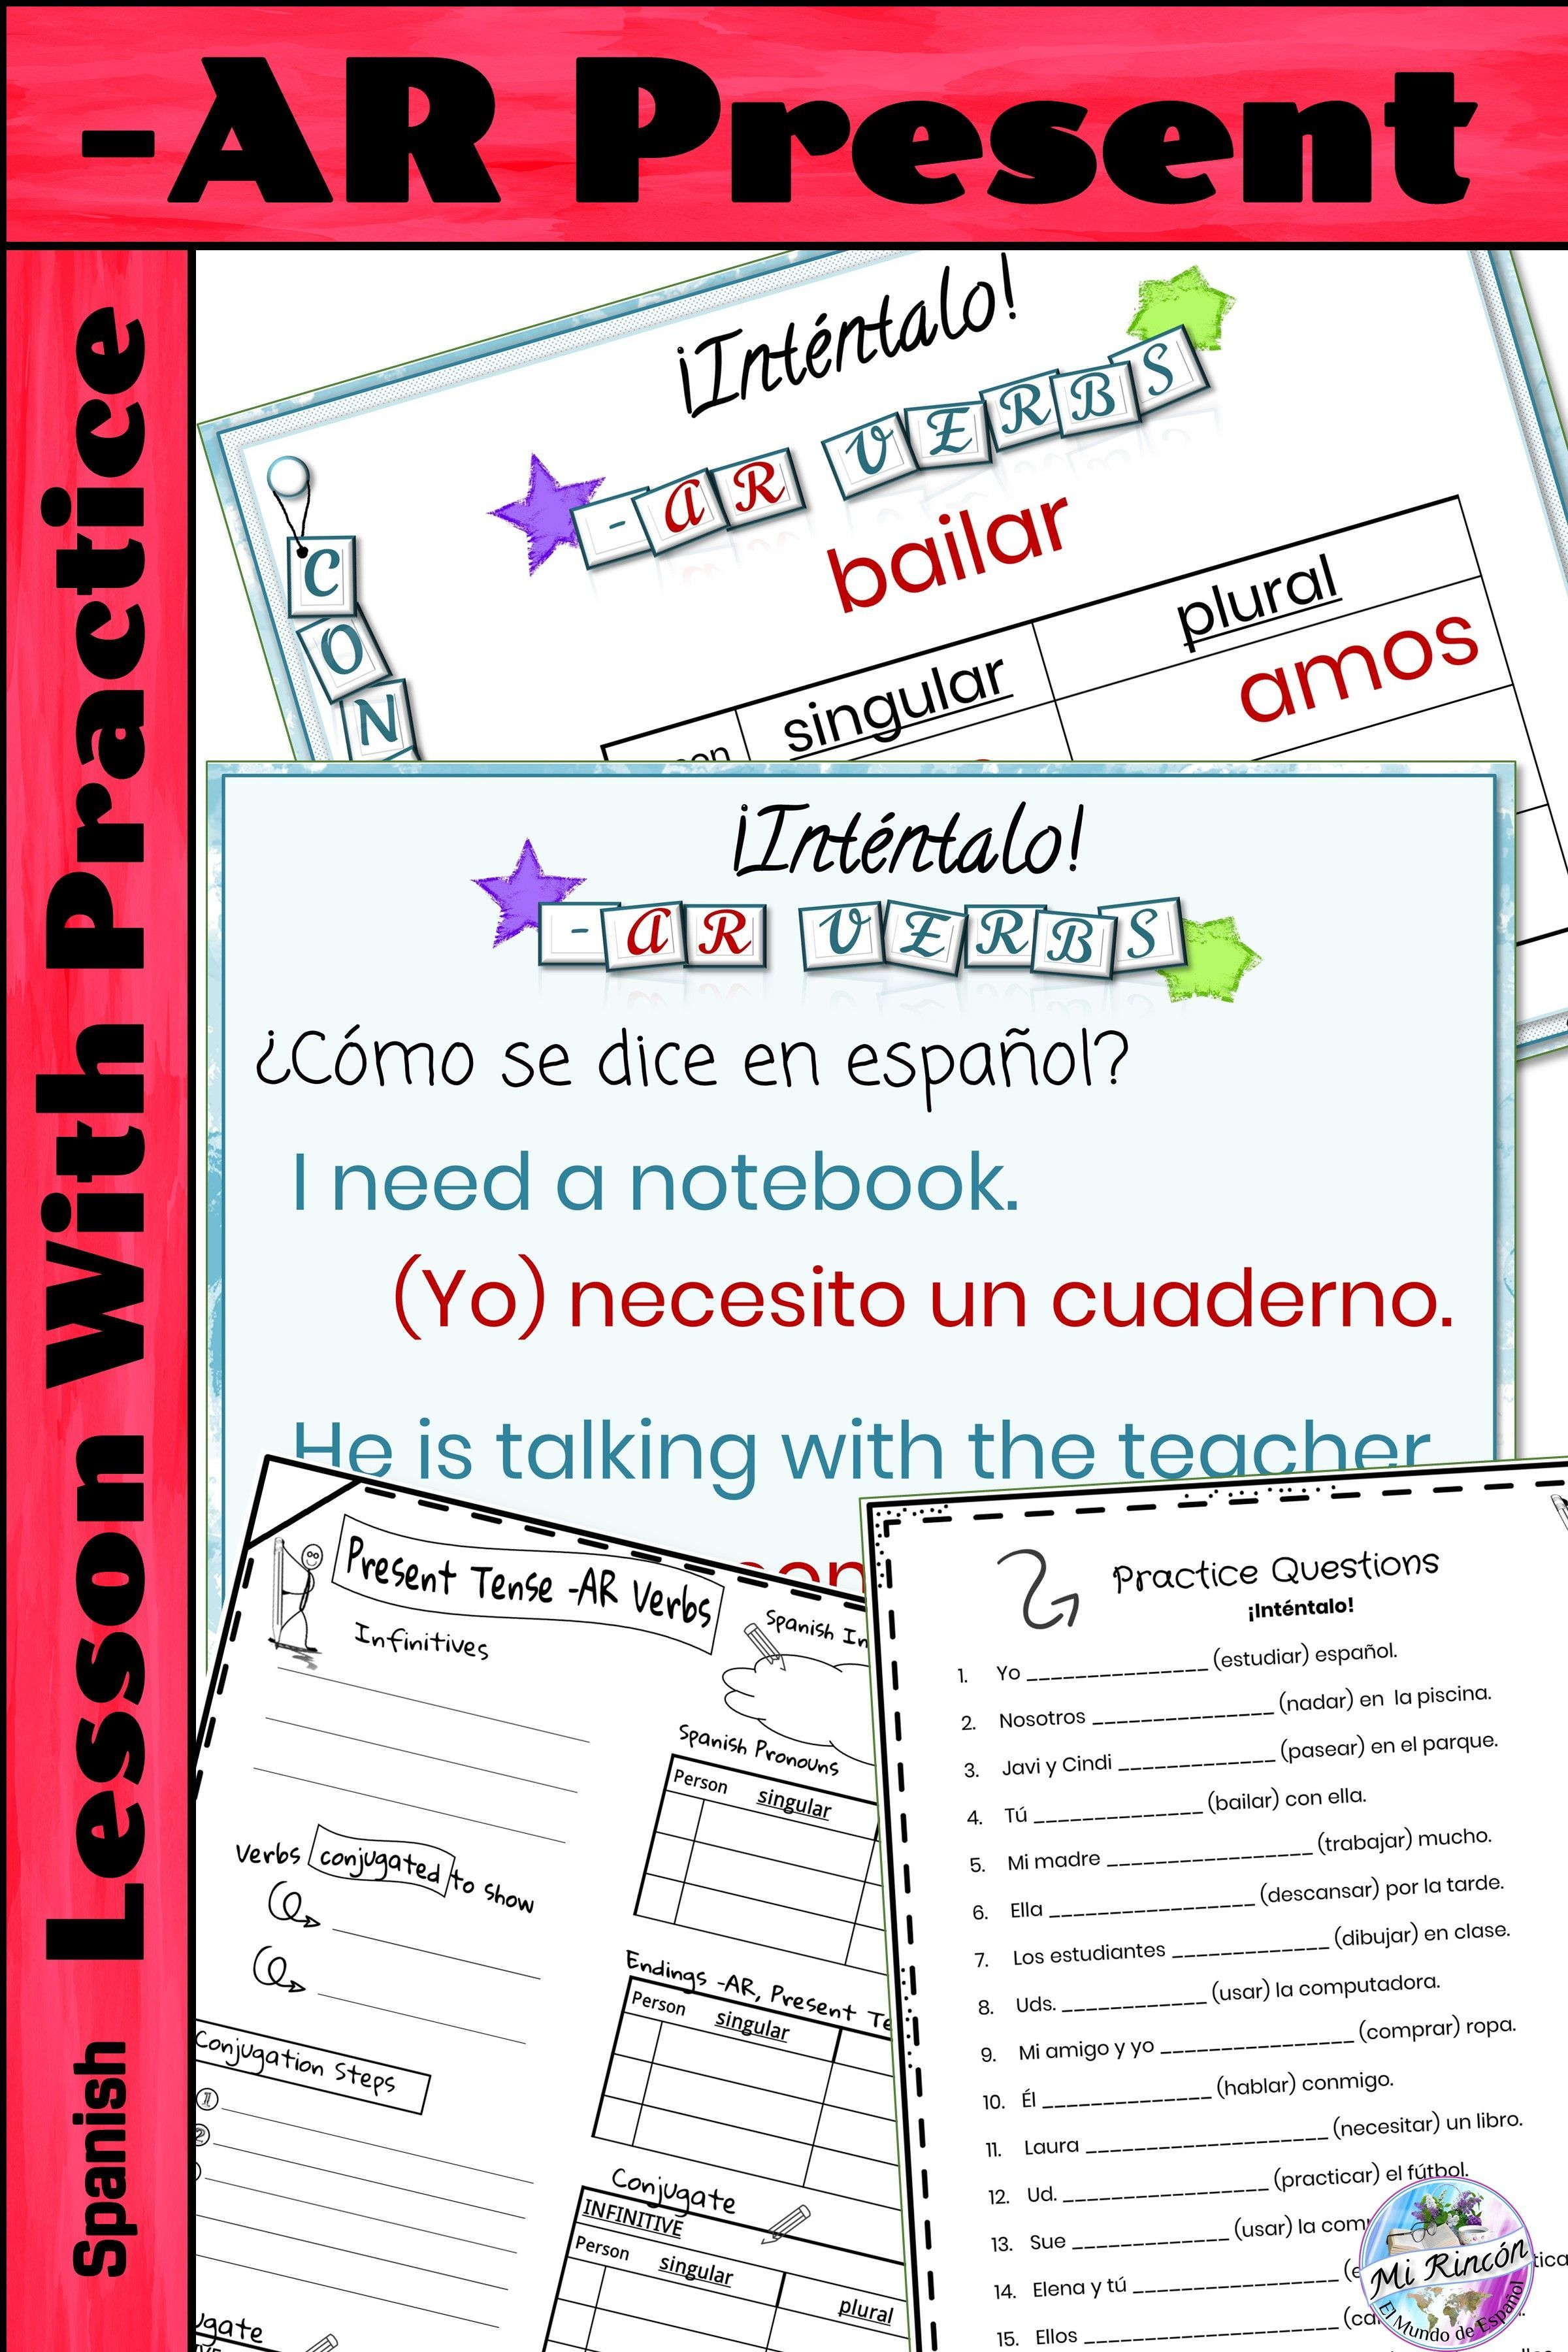 How To Conjugate Ar Verbs In The Present Tense In Spanish This Powerpoint Steps Students Through The Unfami Verbs Lessons Spanish Verbs Presents For Teachers [ 3600 x 2400 Pixel ]